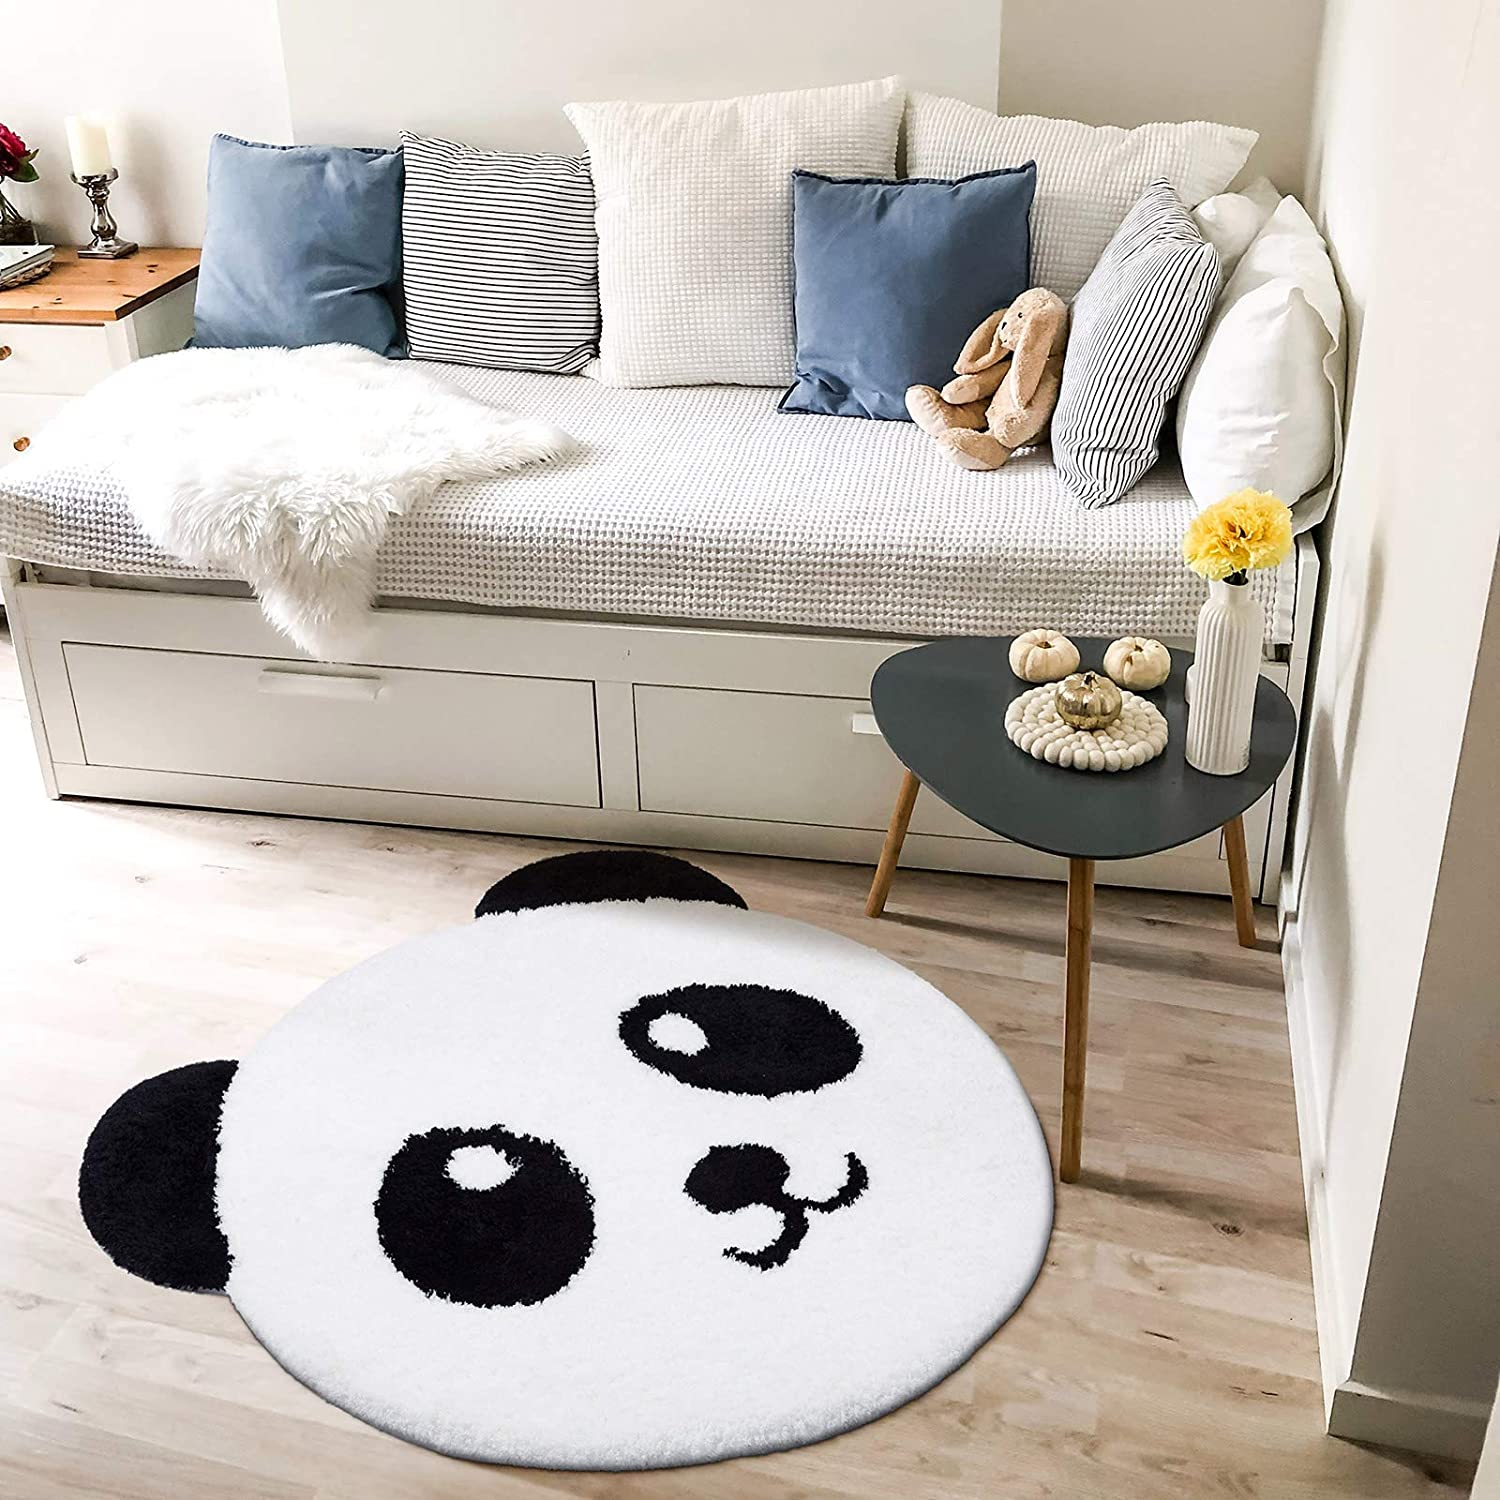 "Decomall Panda Area Rug Round Nursery Kids Play Mat Animal Shape Shaggy Plush Super Soft, 3'4"" x 3'4"" Round"